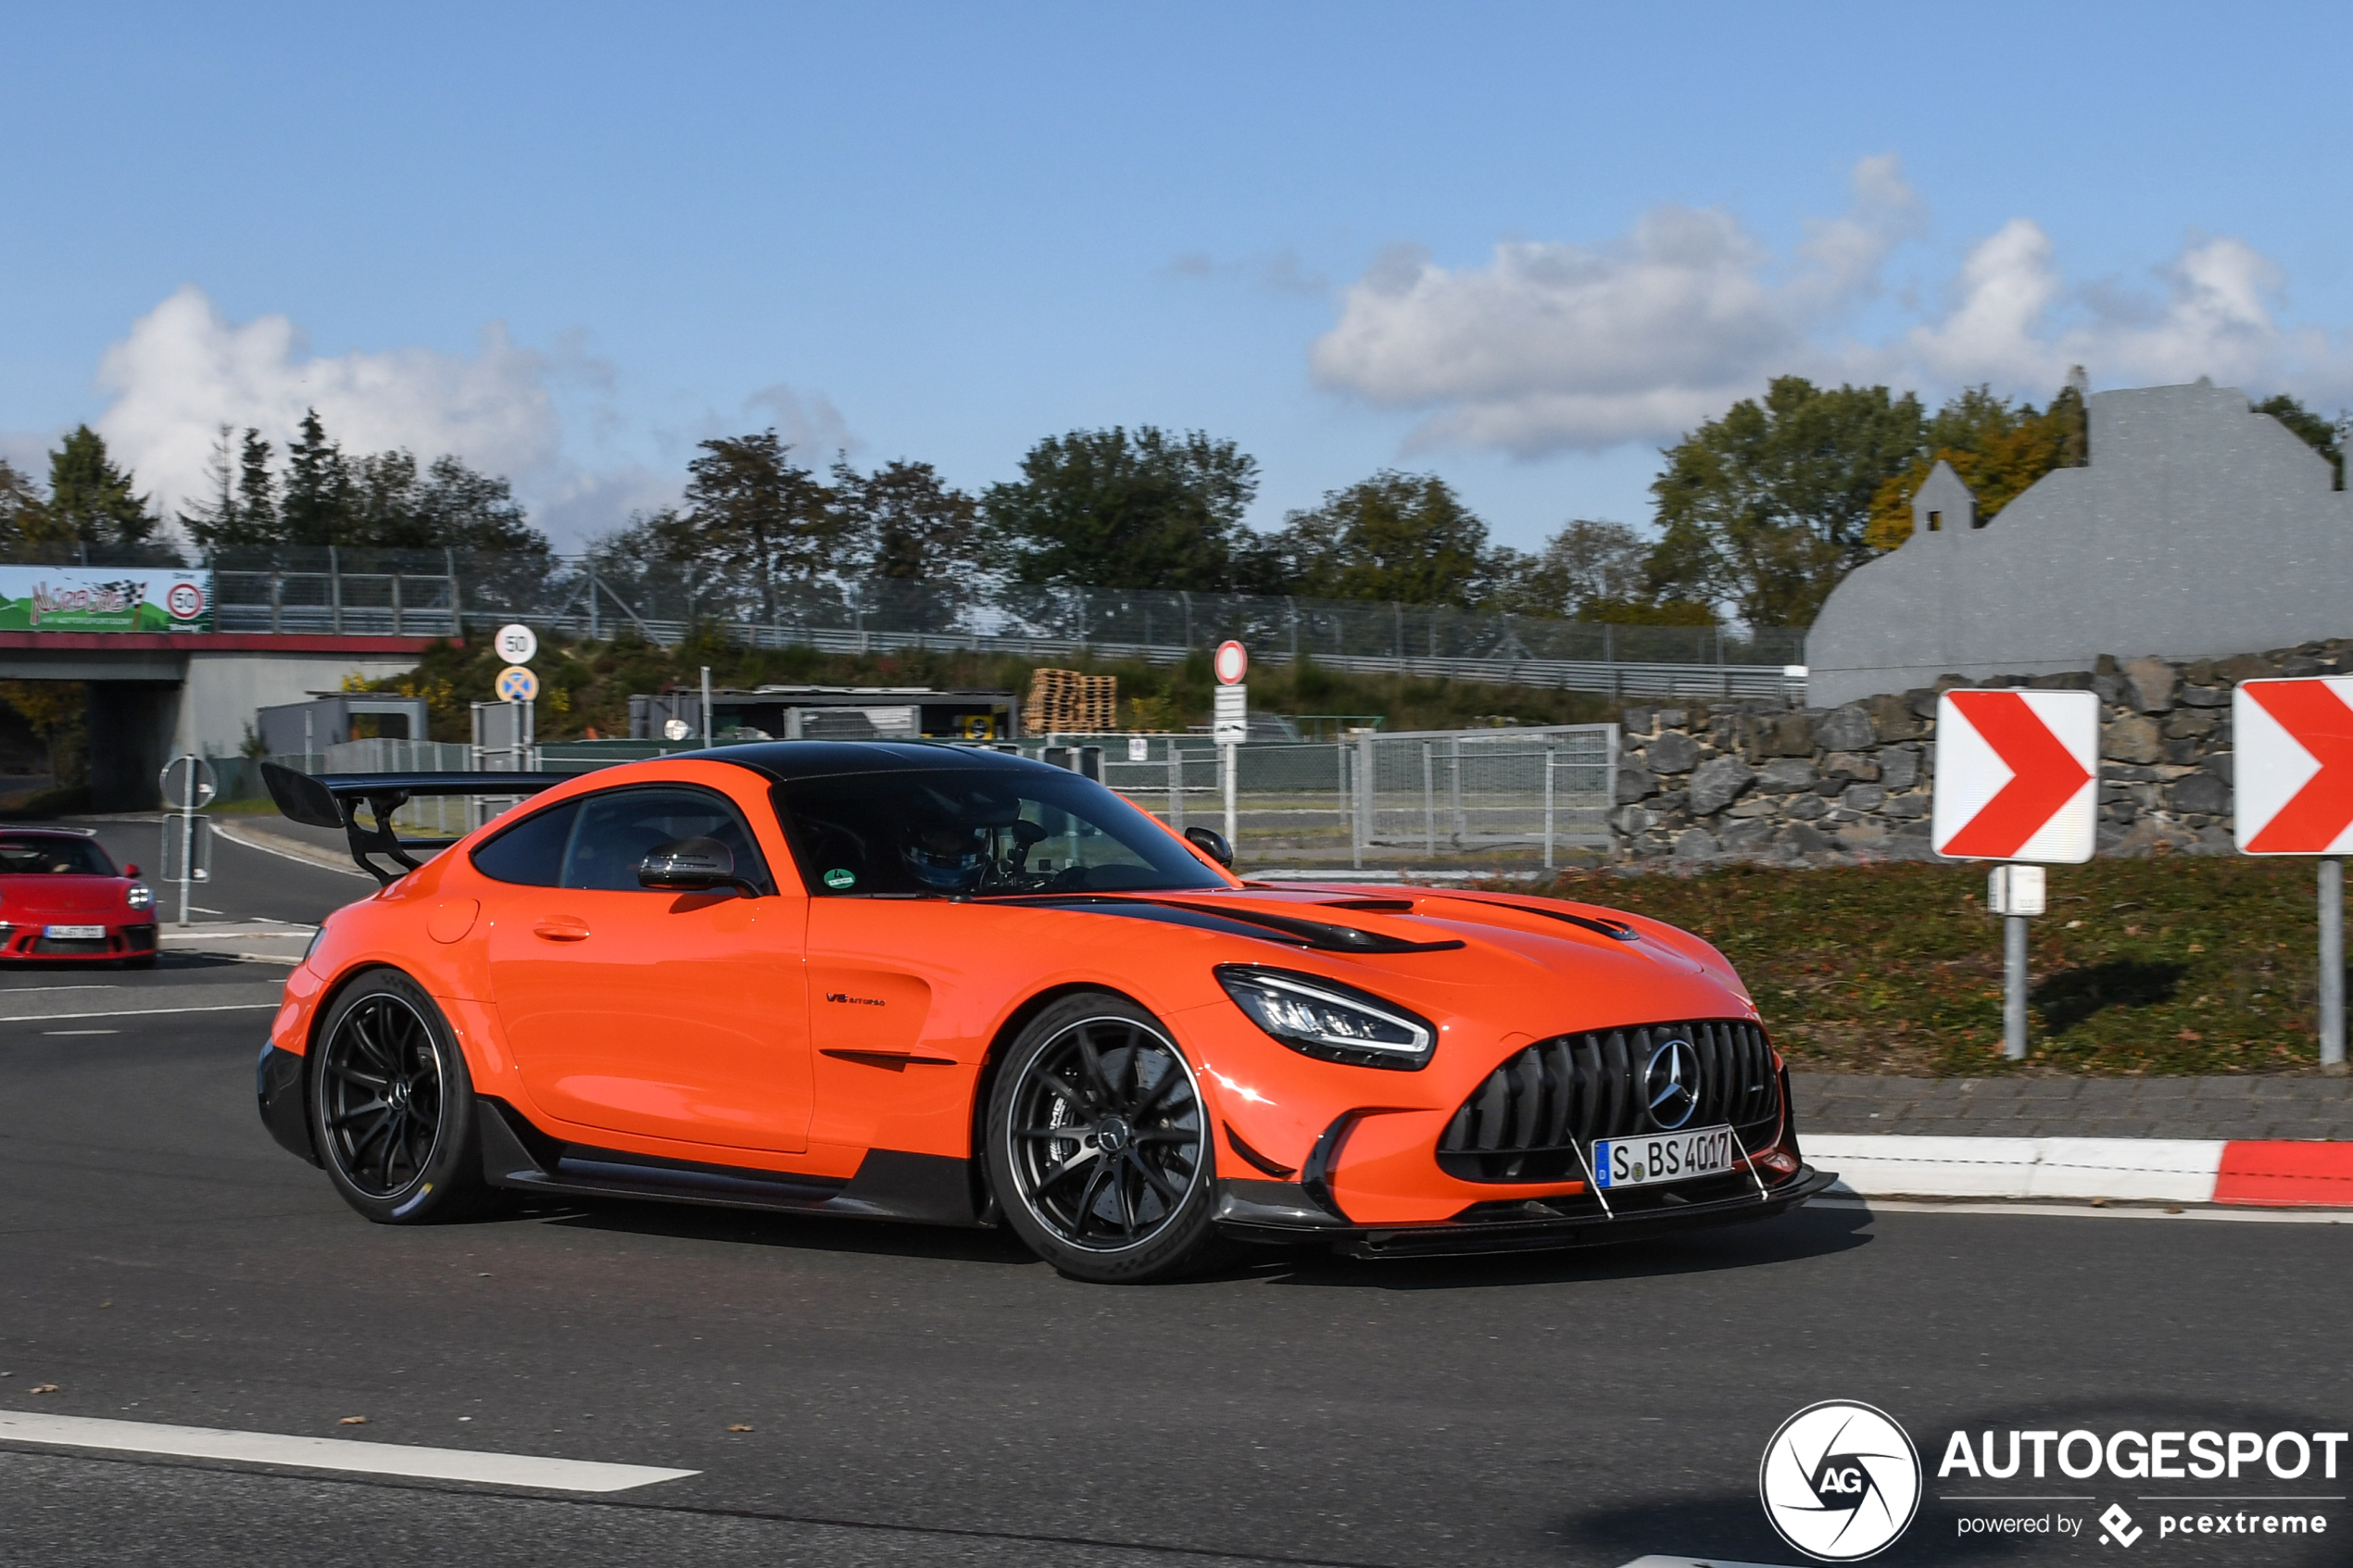 Mercedes-AMG GT Black Series wears orange with pride